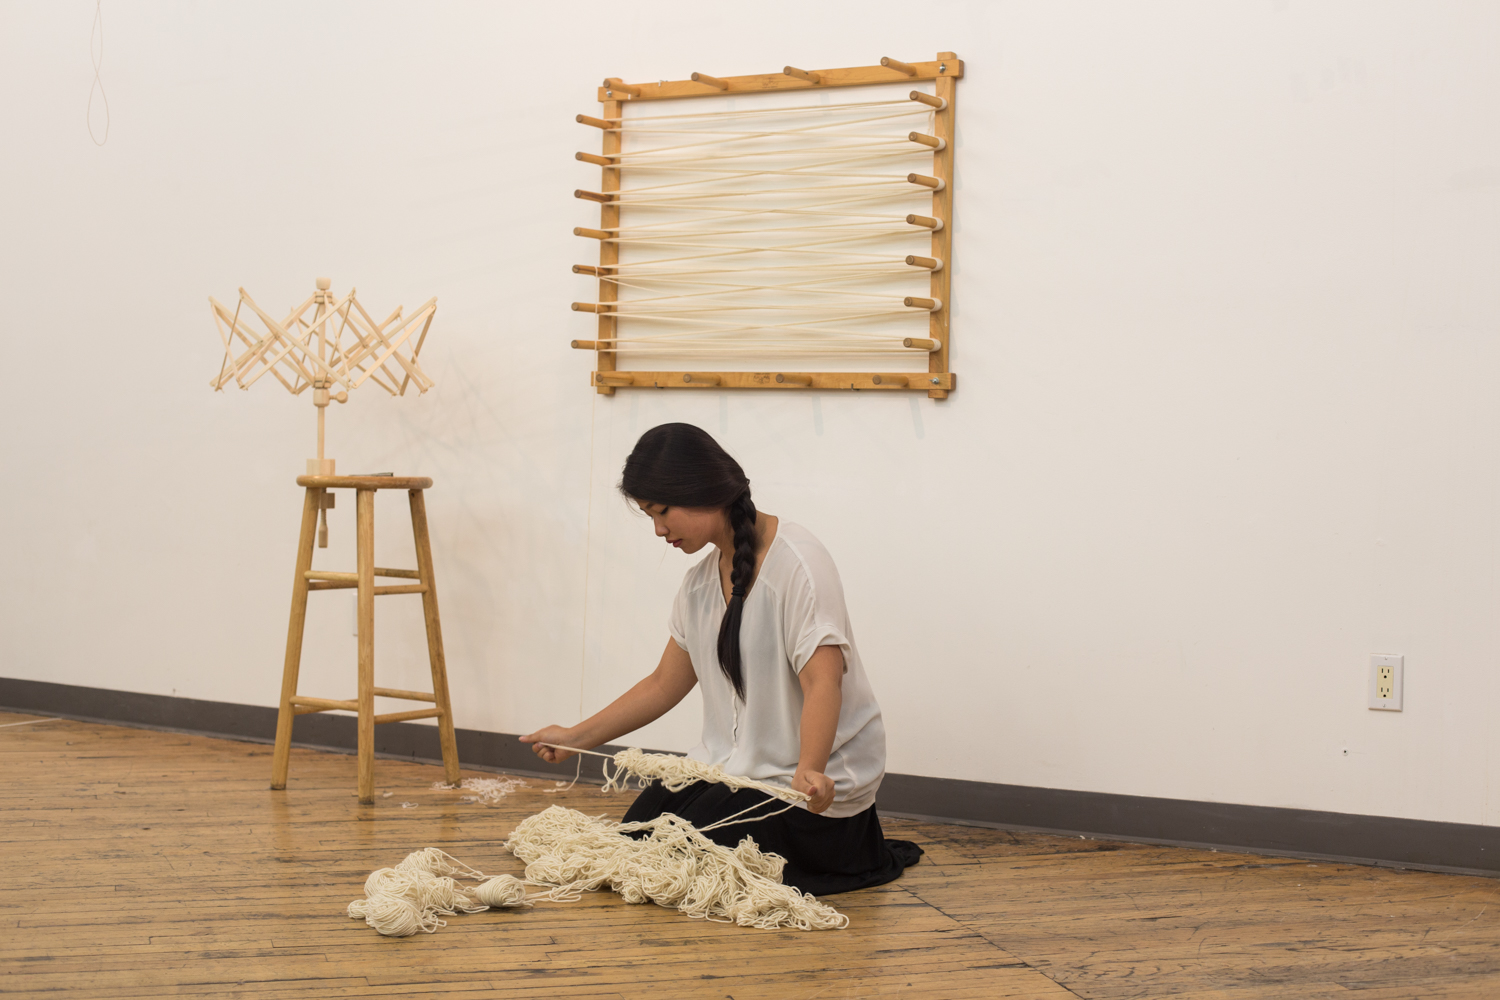 The artist is on the floor stretching the heap of yarn to create knots.